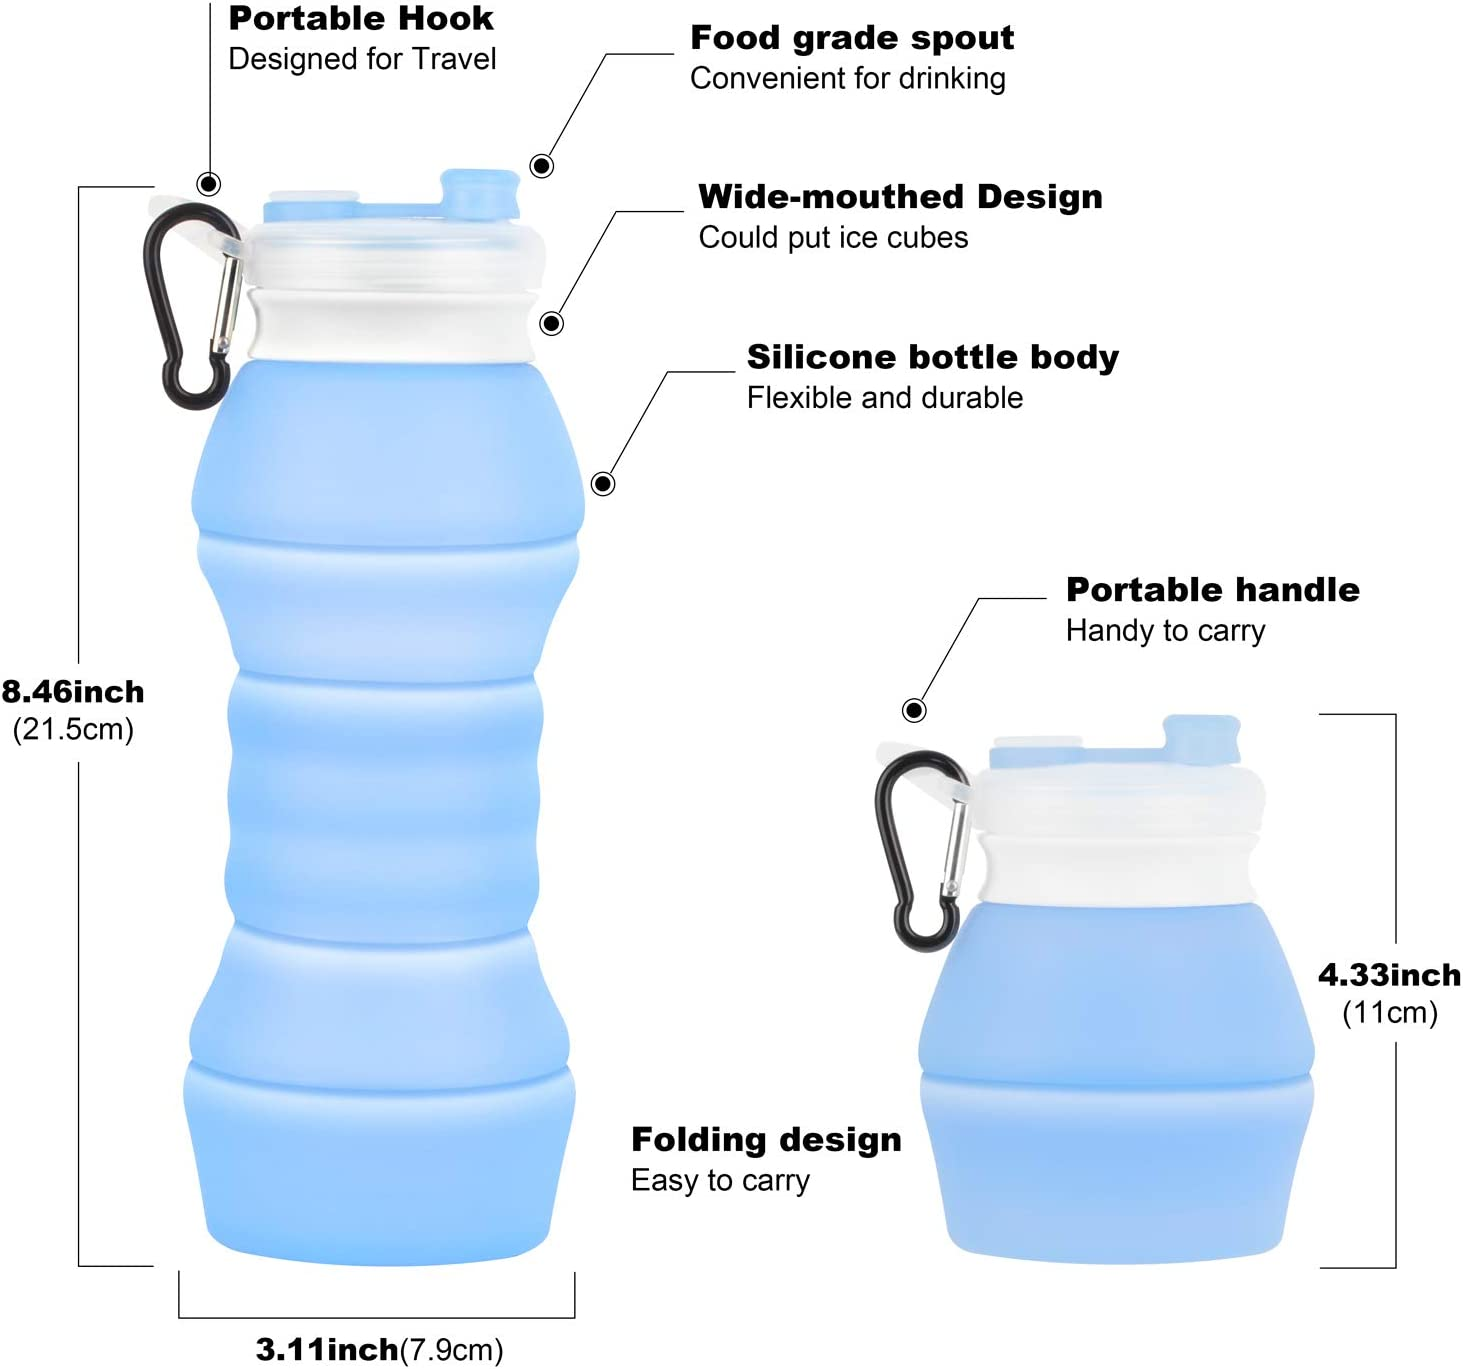 water bottles cages collapsible silicone water bottle 550 ml 18 6 oz fda approved portable blue sporting goods cub co jp 小池輪業